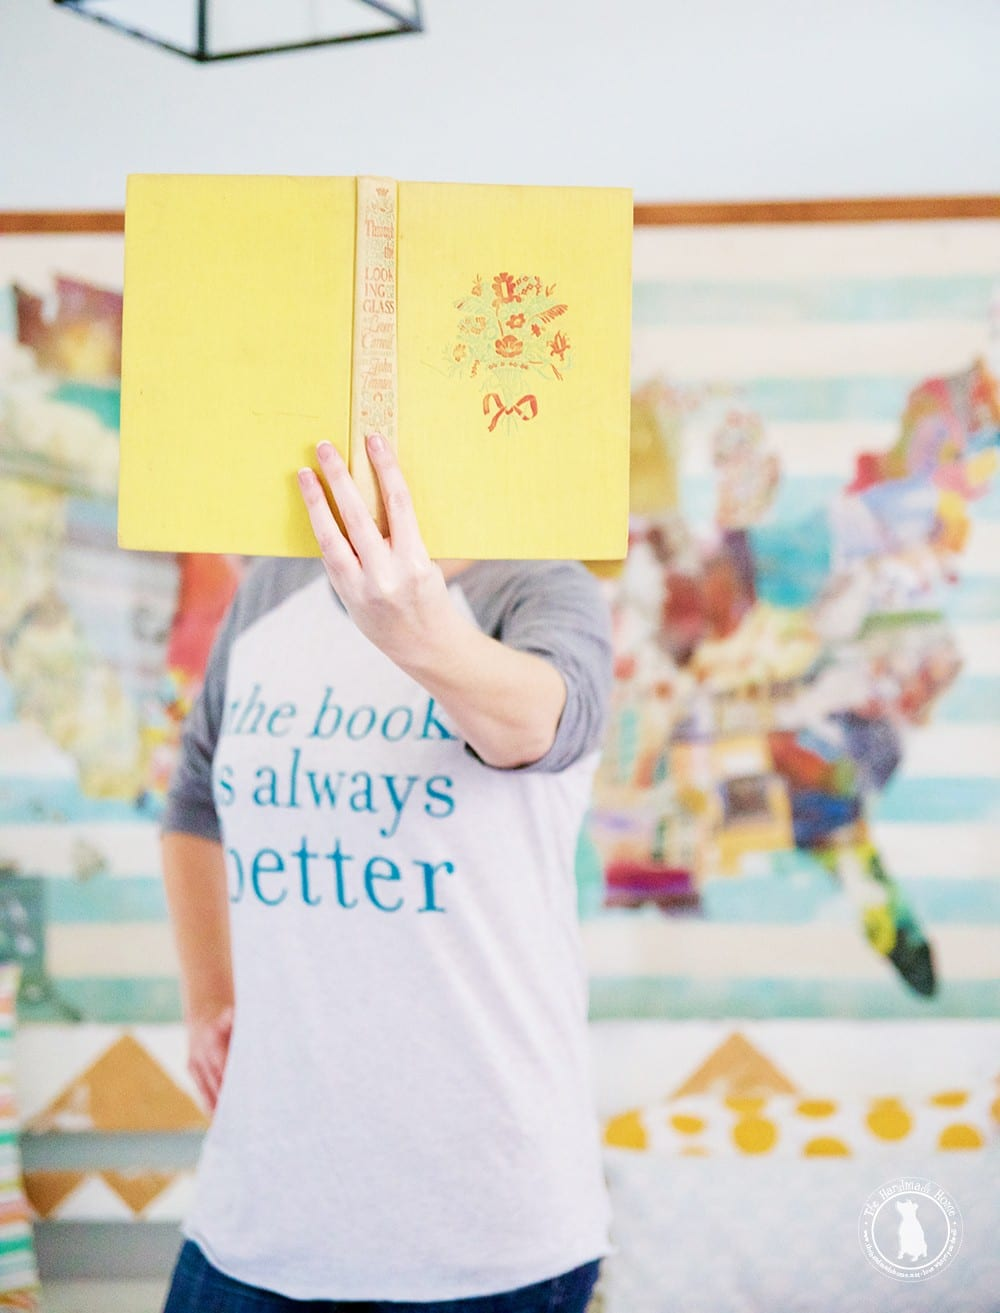 the_book_is_always_better